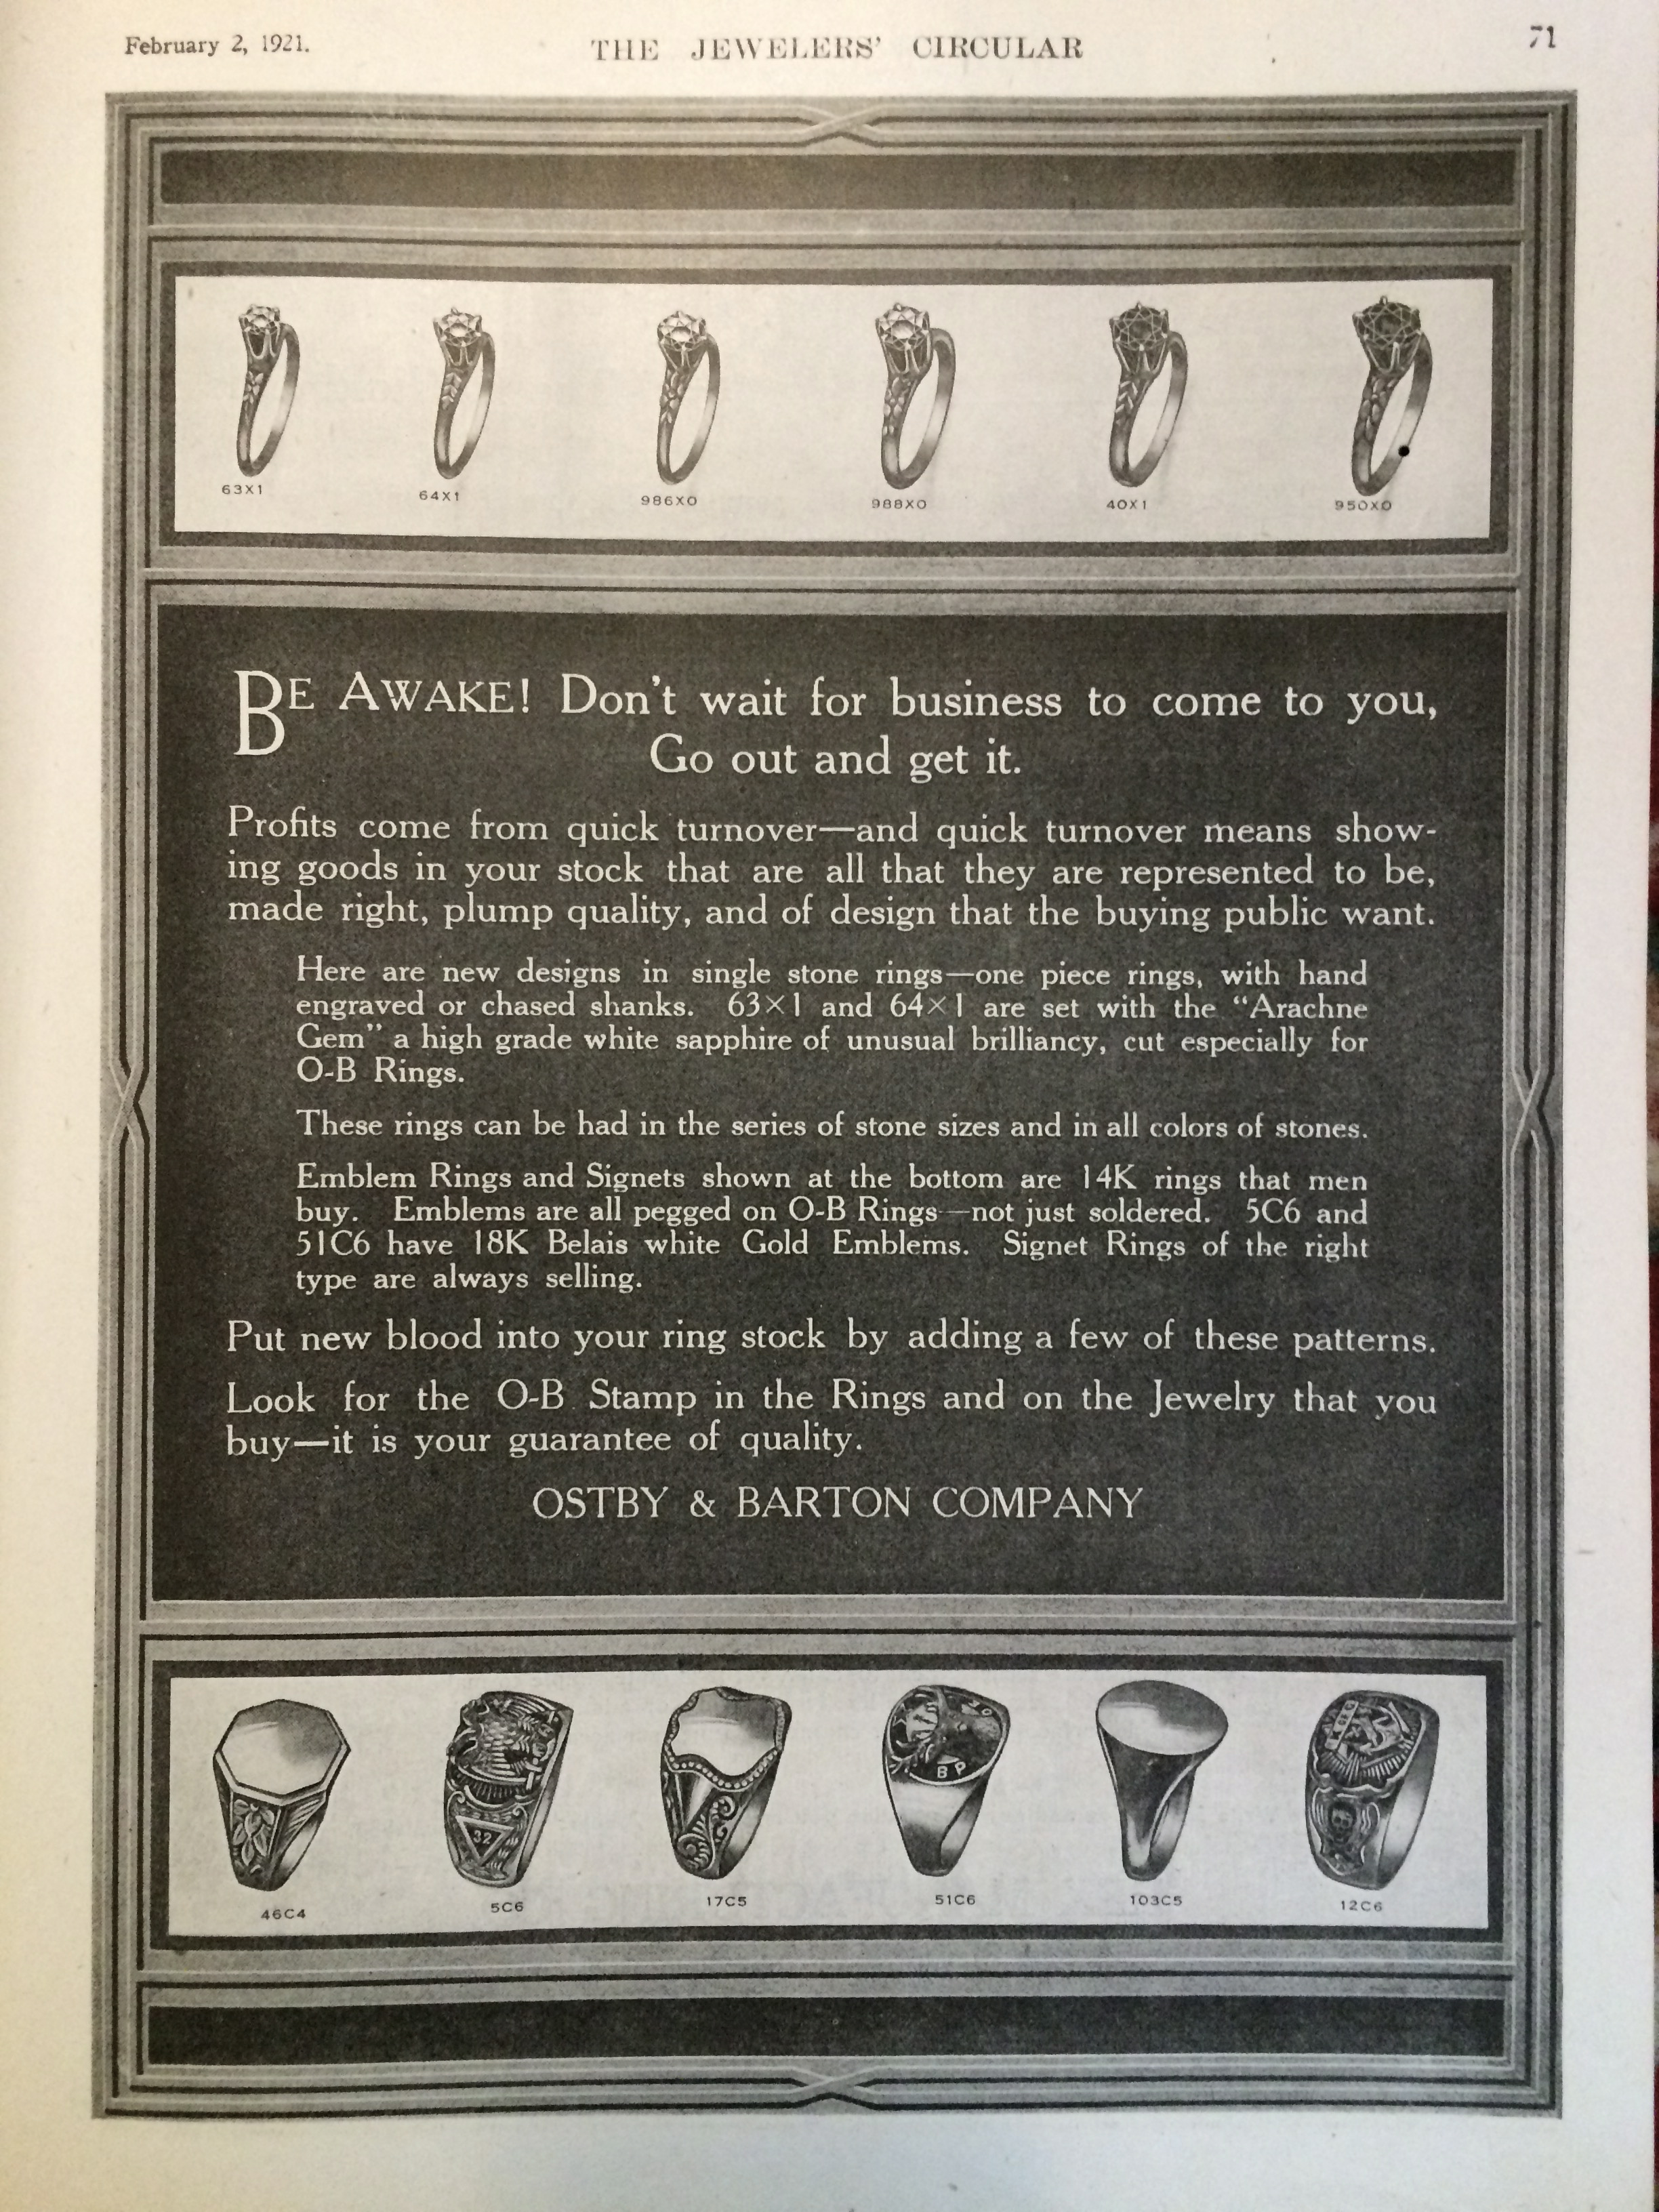 """Be Awake! Don't wait for business to come to you, go out and get it."" - 1921 Ostby & Barton Company Ad for jewelers."